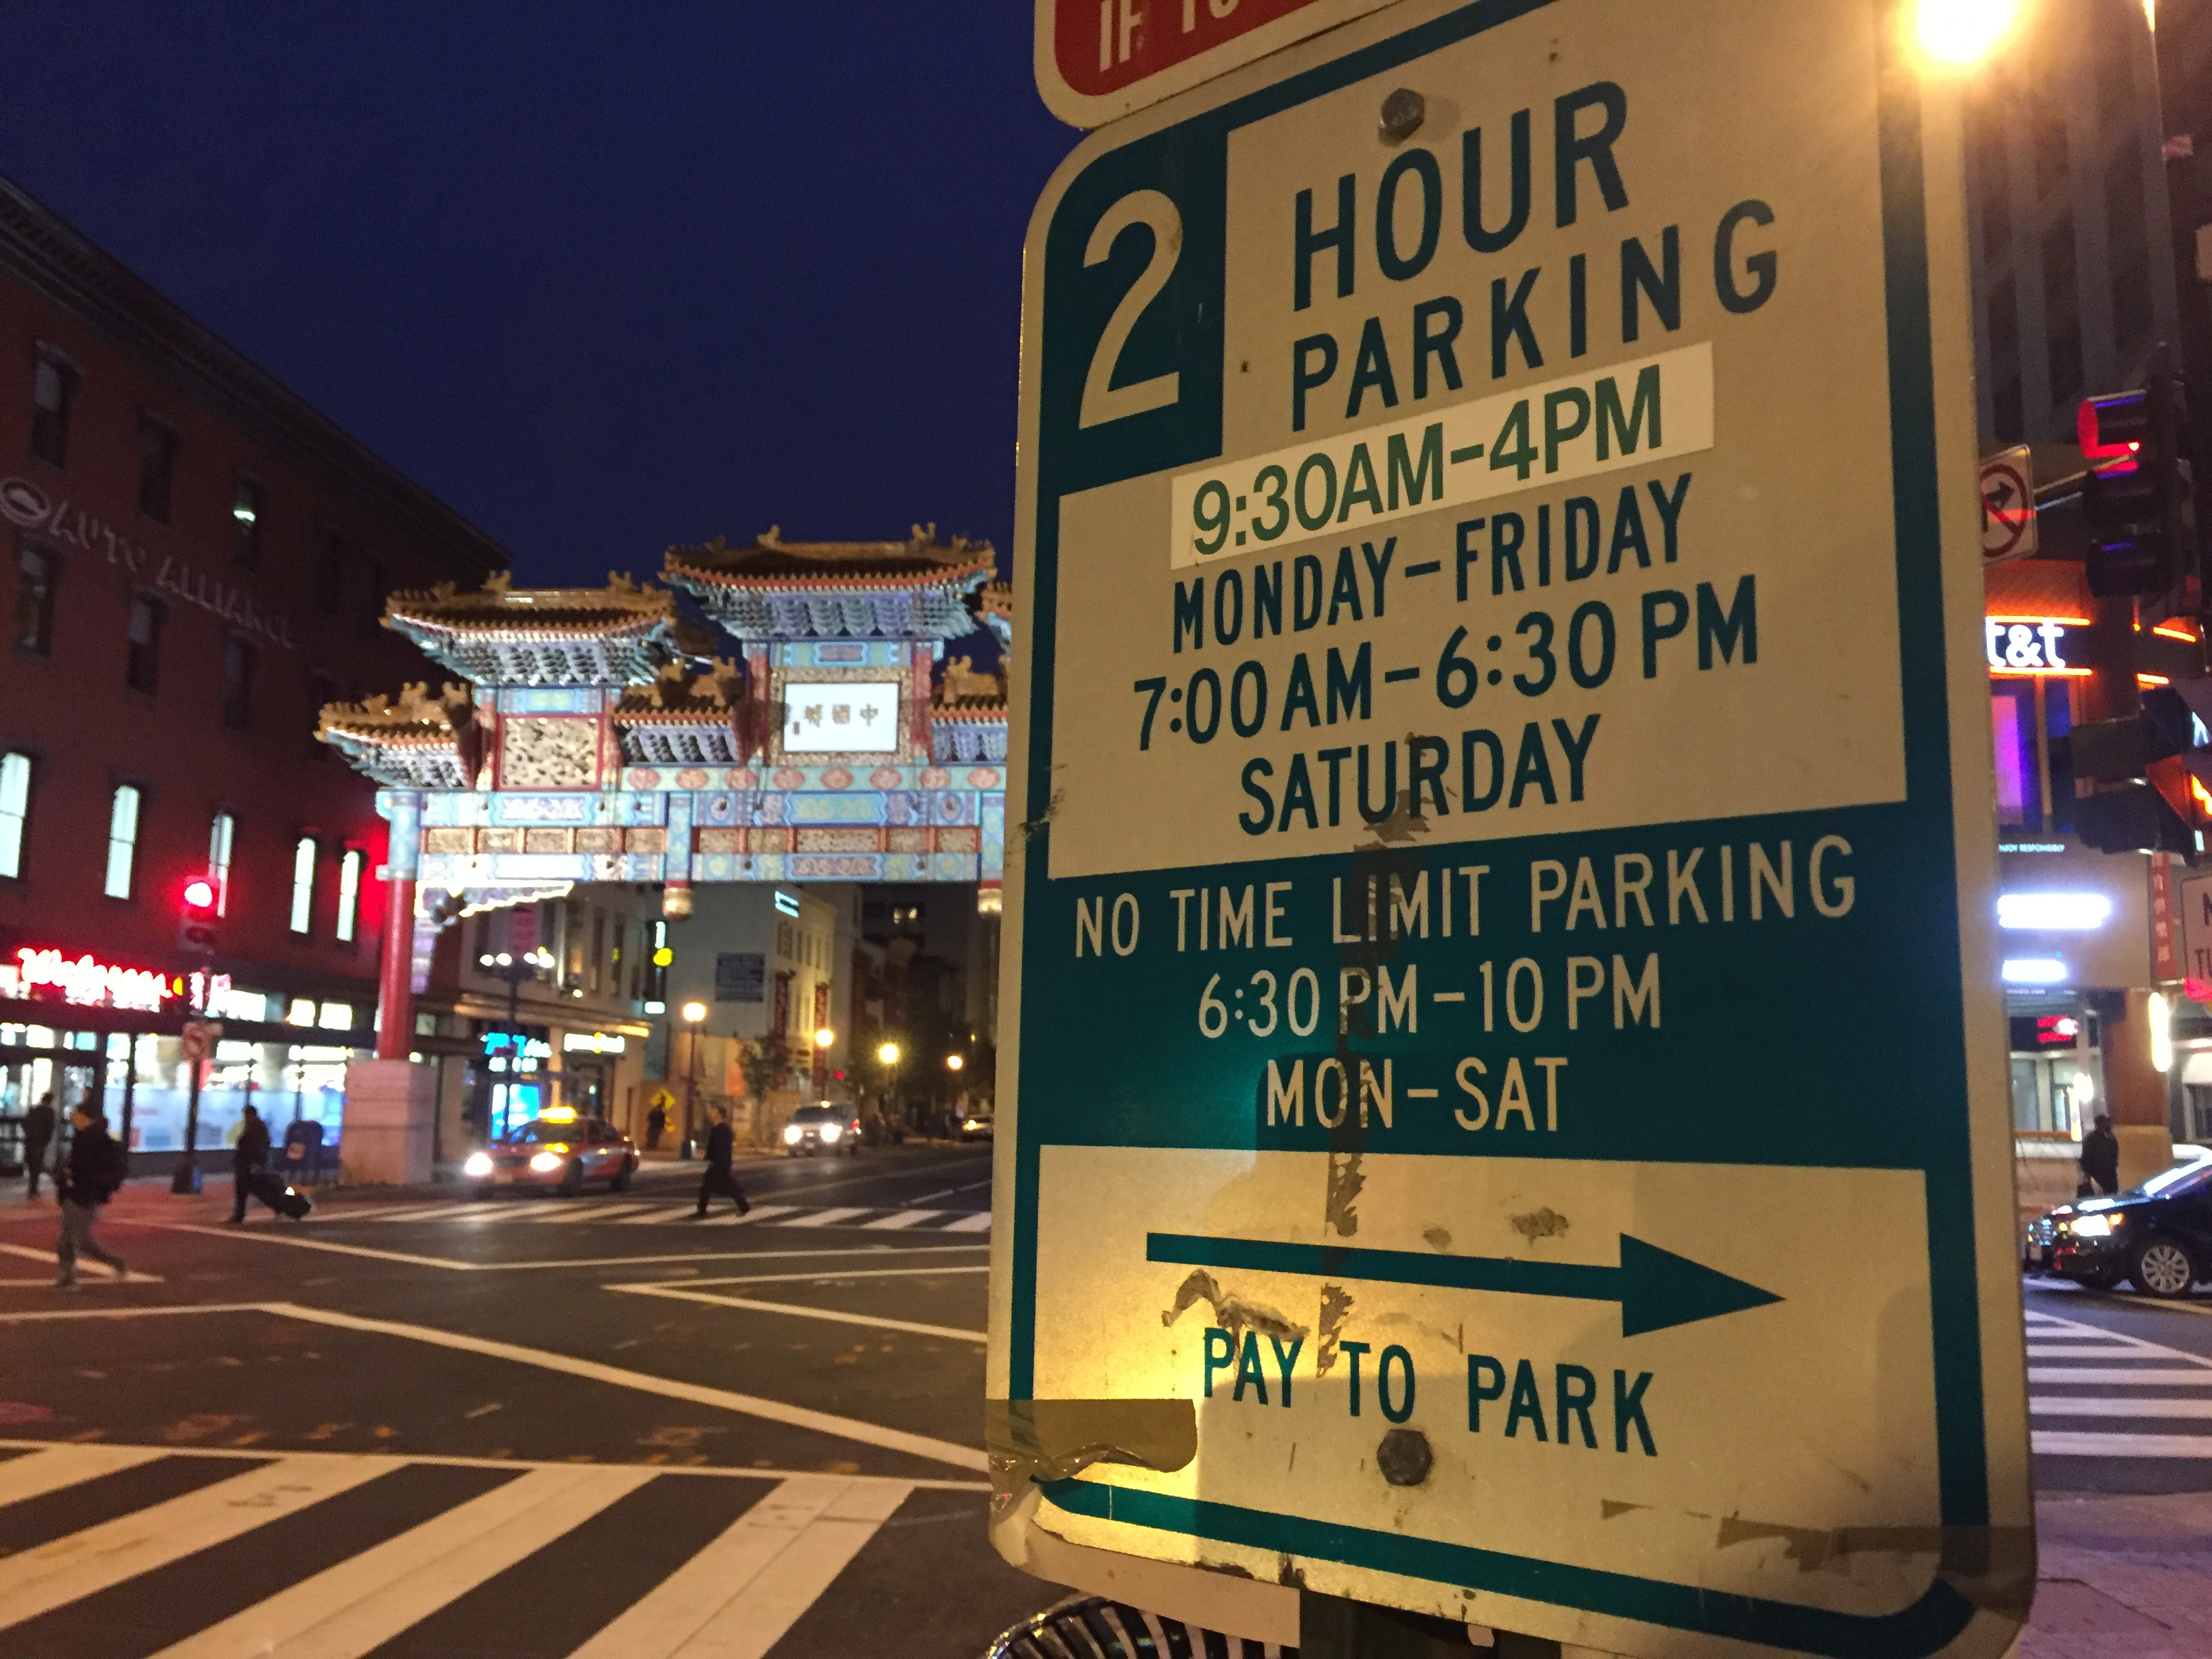 'Surge parking' in downtown D.C. opposed by residents, study says